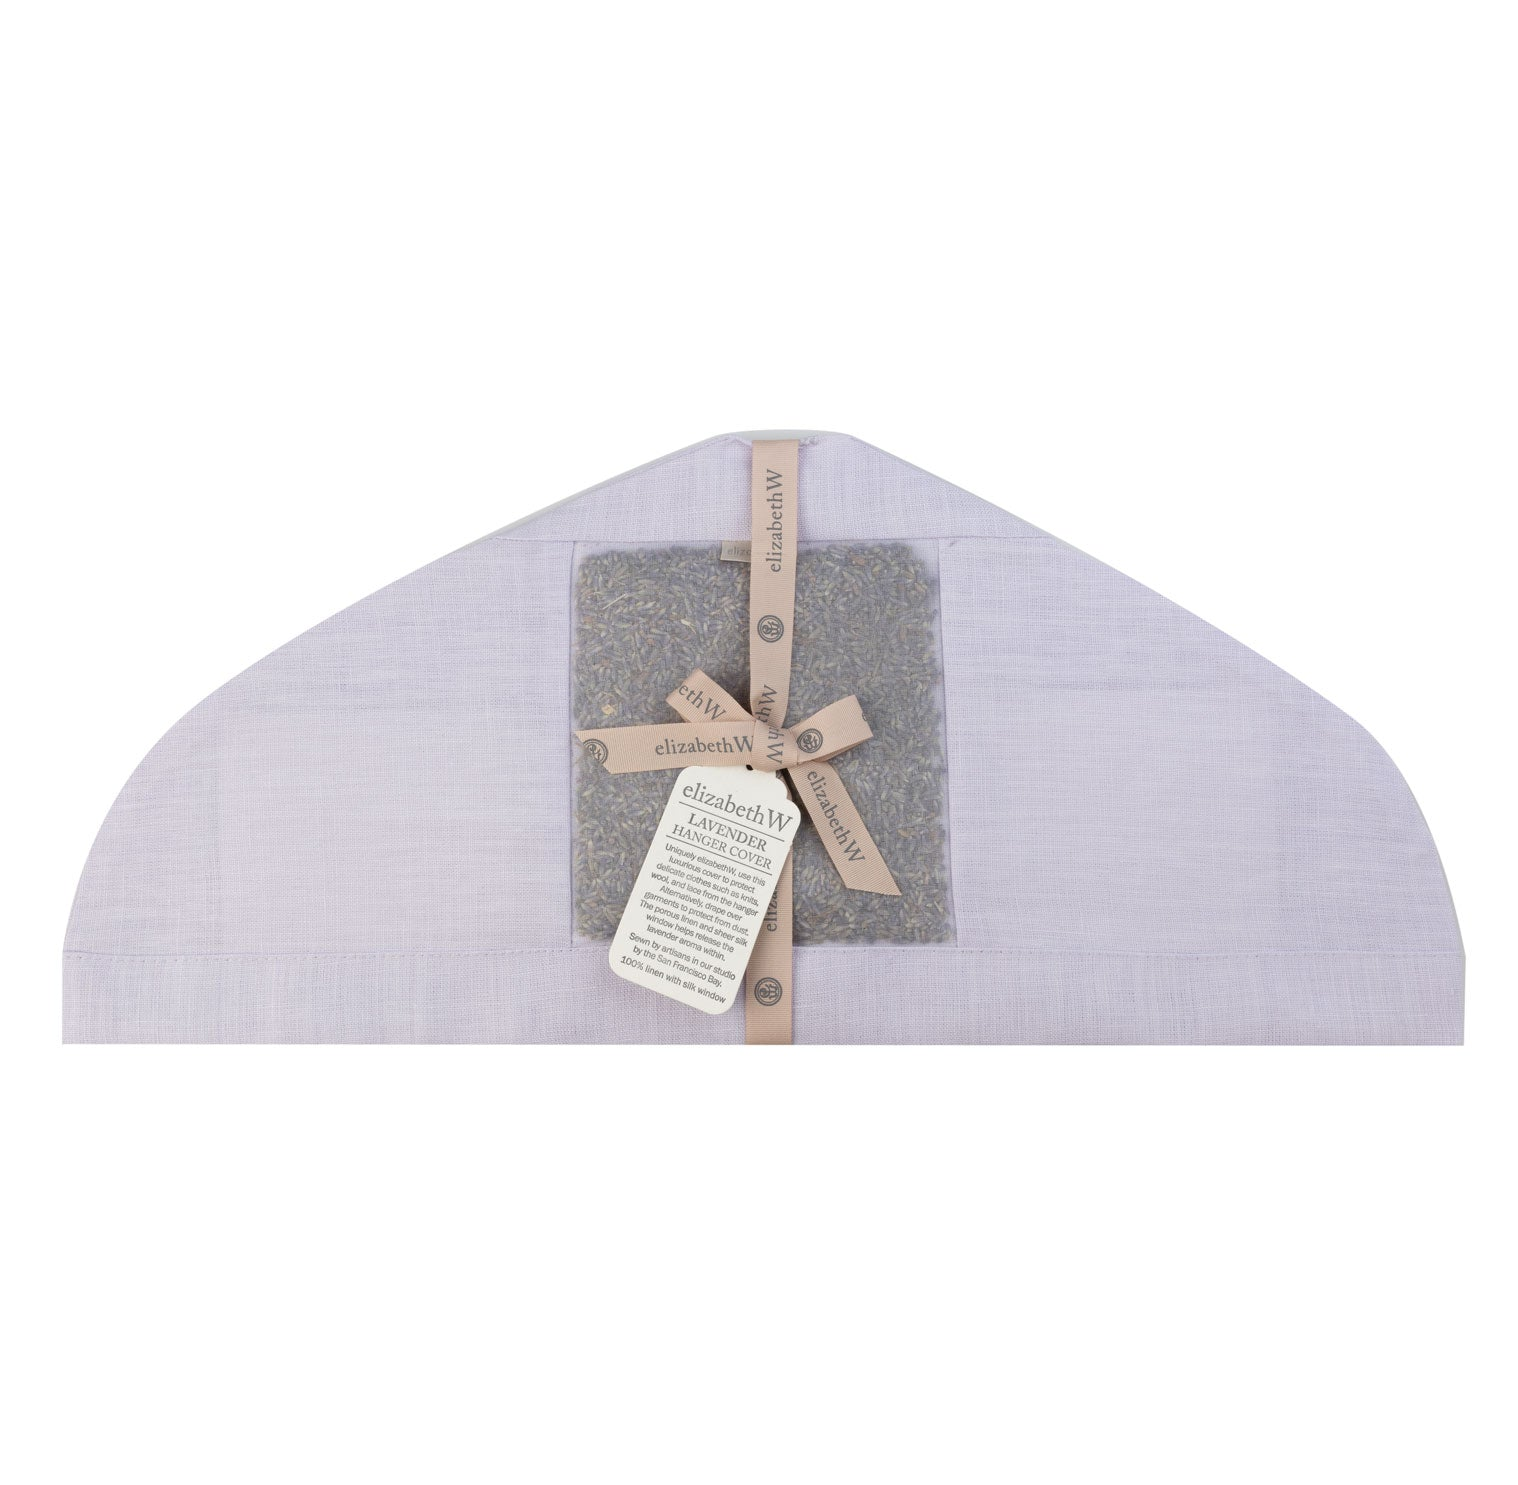 lavender filled in a purple linen hanger cover